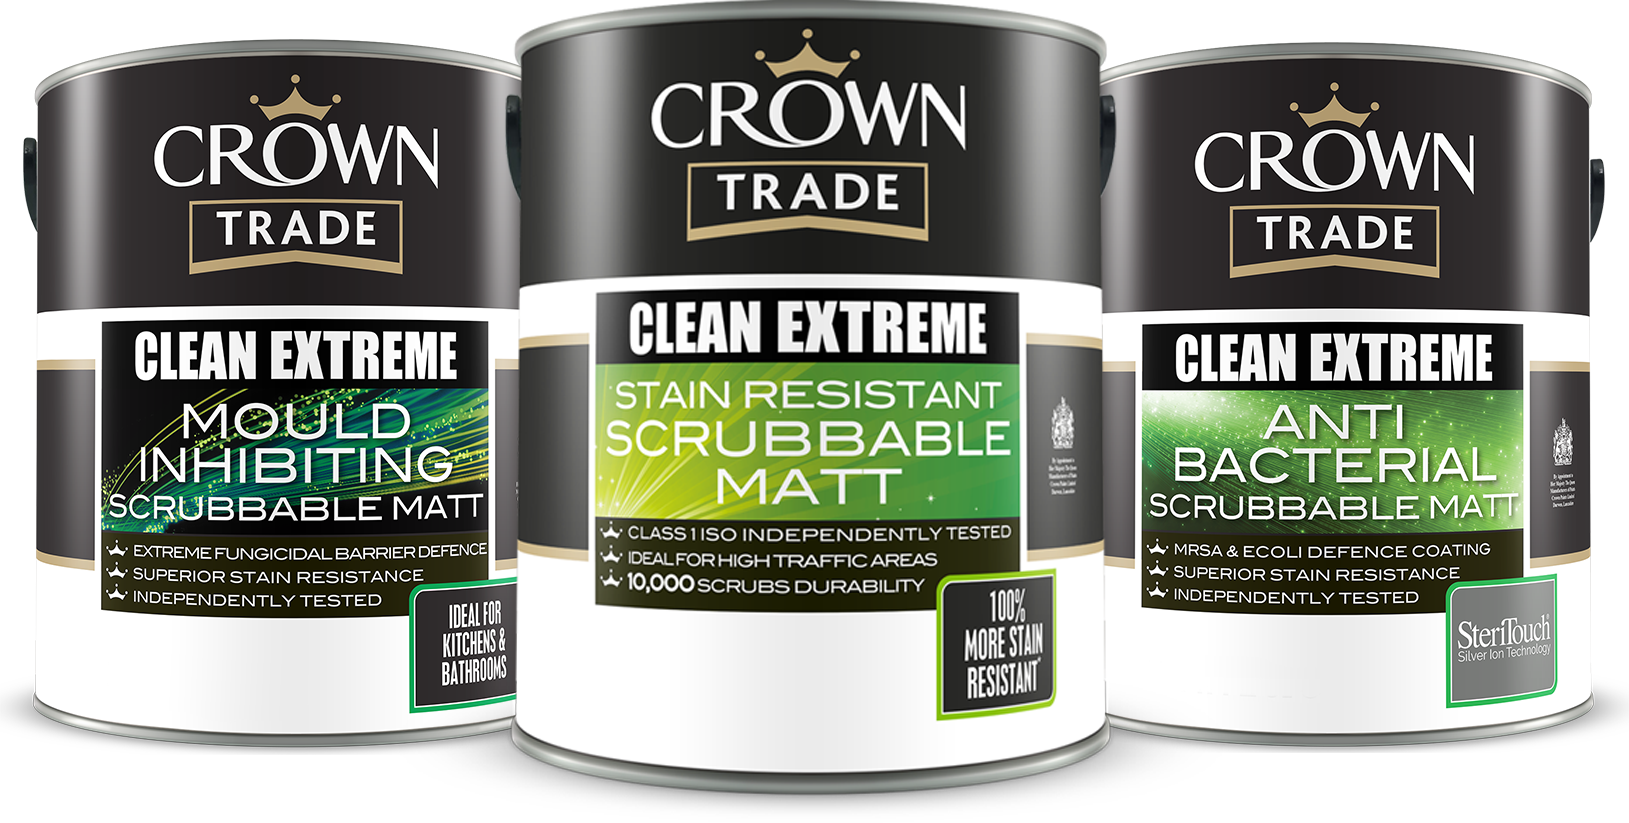 CROWN TRADE TAKES CLEAN TO THE EXTREME, paint